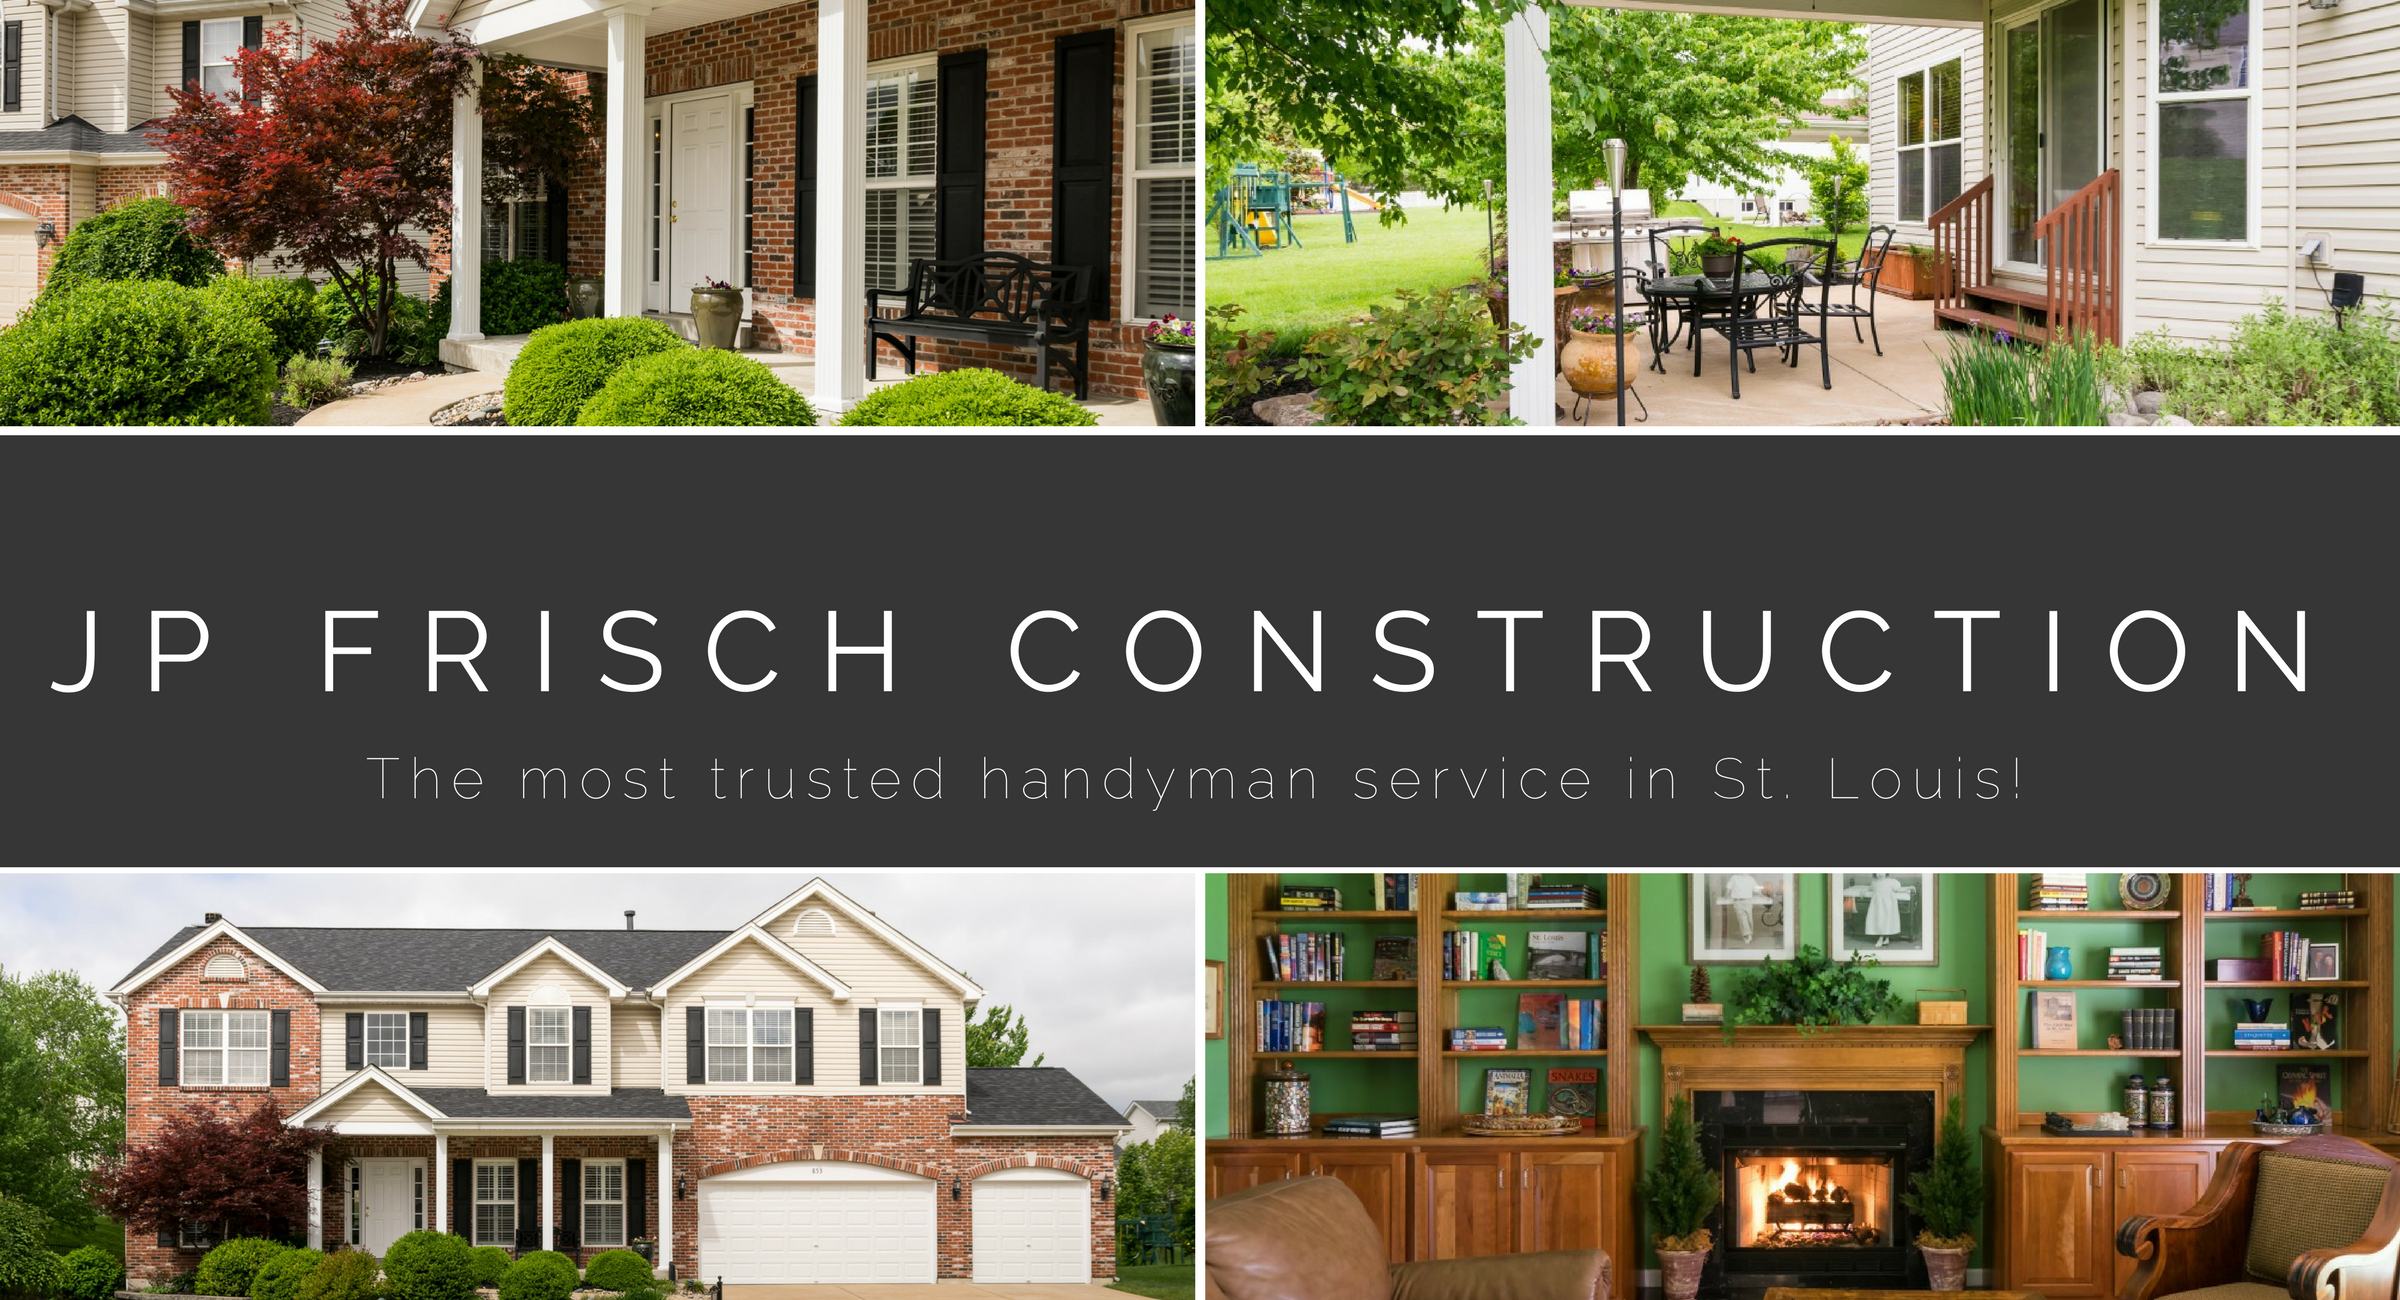 J. P. Frisch Construction Services